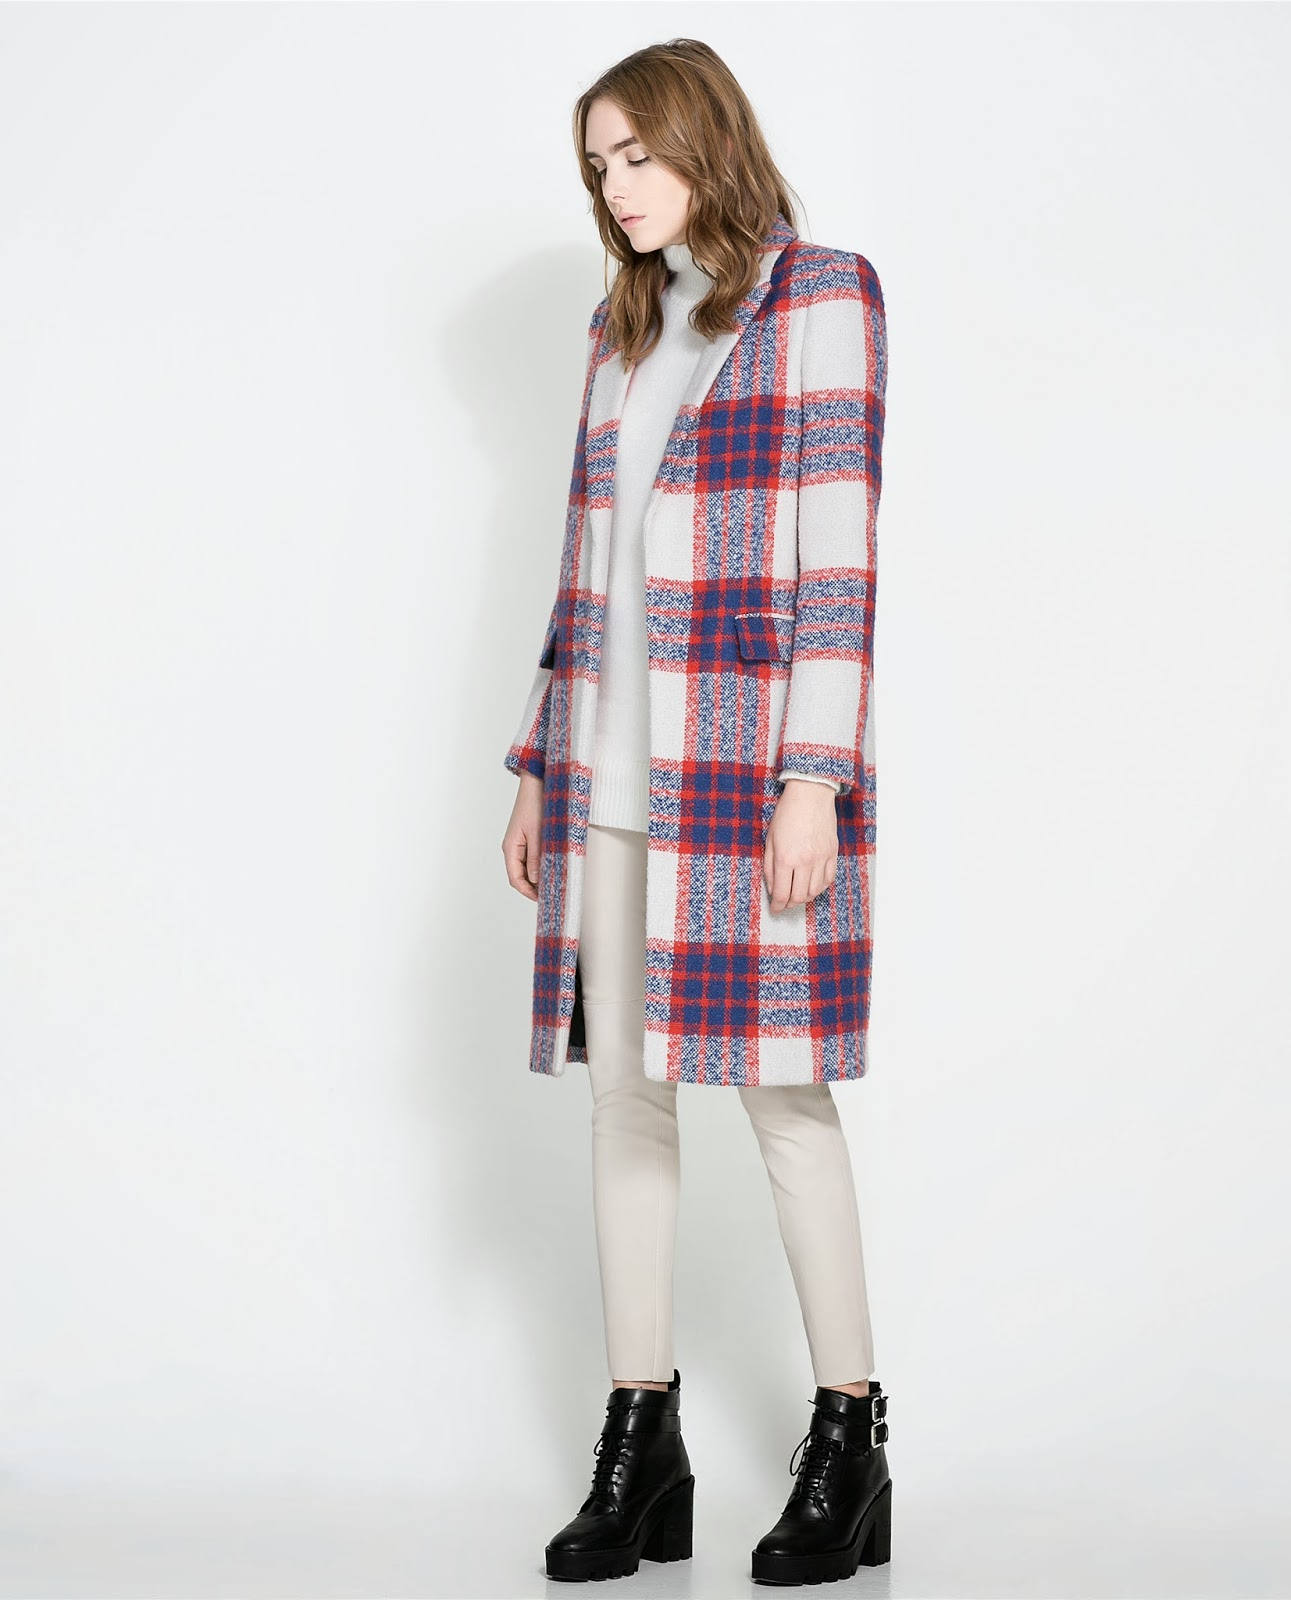 2013 Fall Plaid Trend Coats